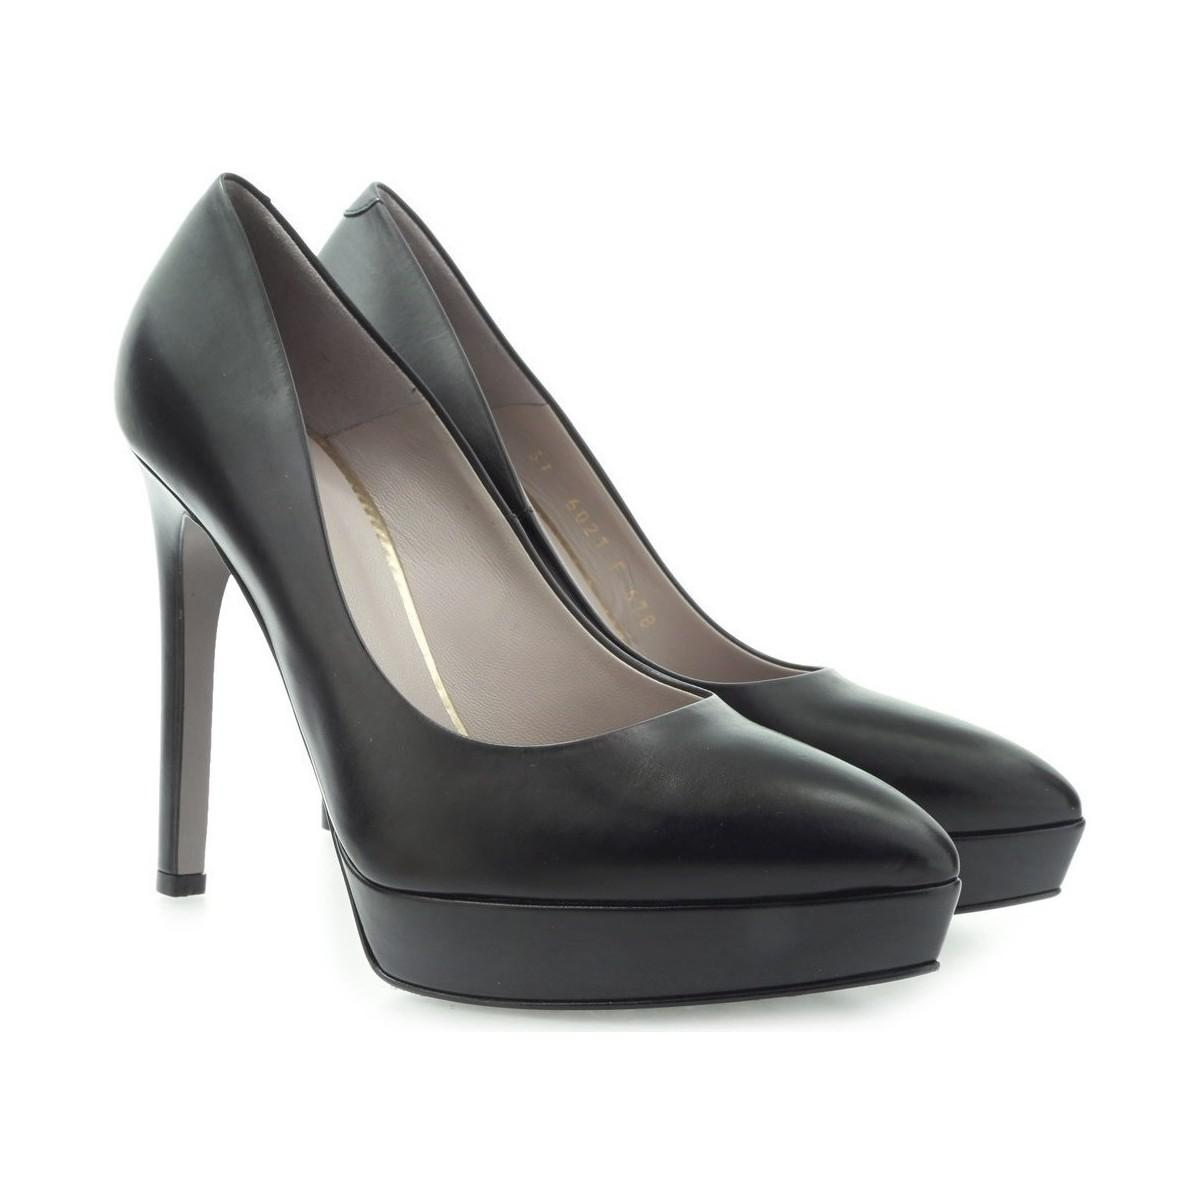 Outlet Authentic Gino Rossi DCF678 women's Court Shoes in Clearance Buy Websites IytiKjYJRJ